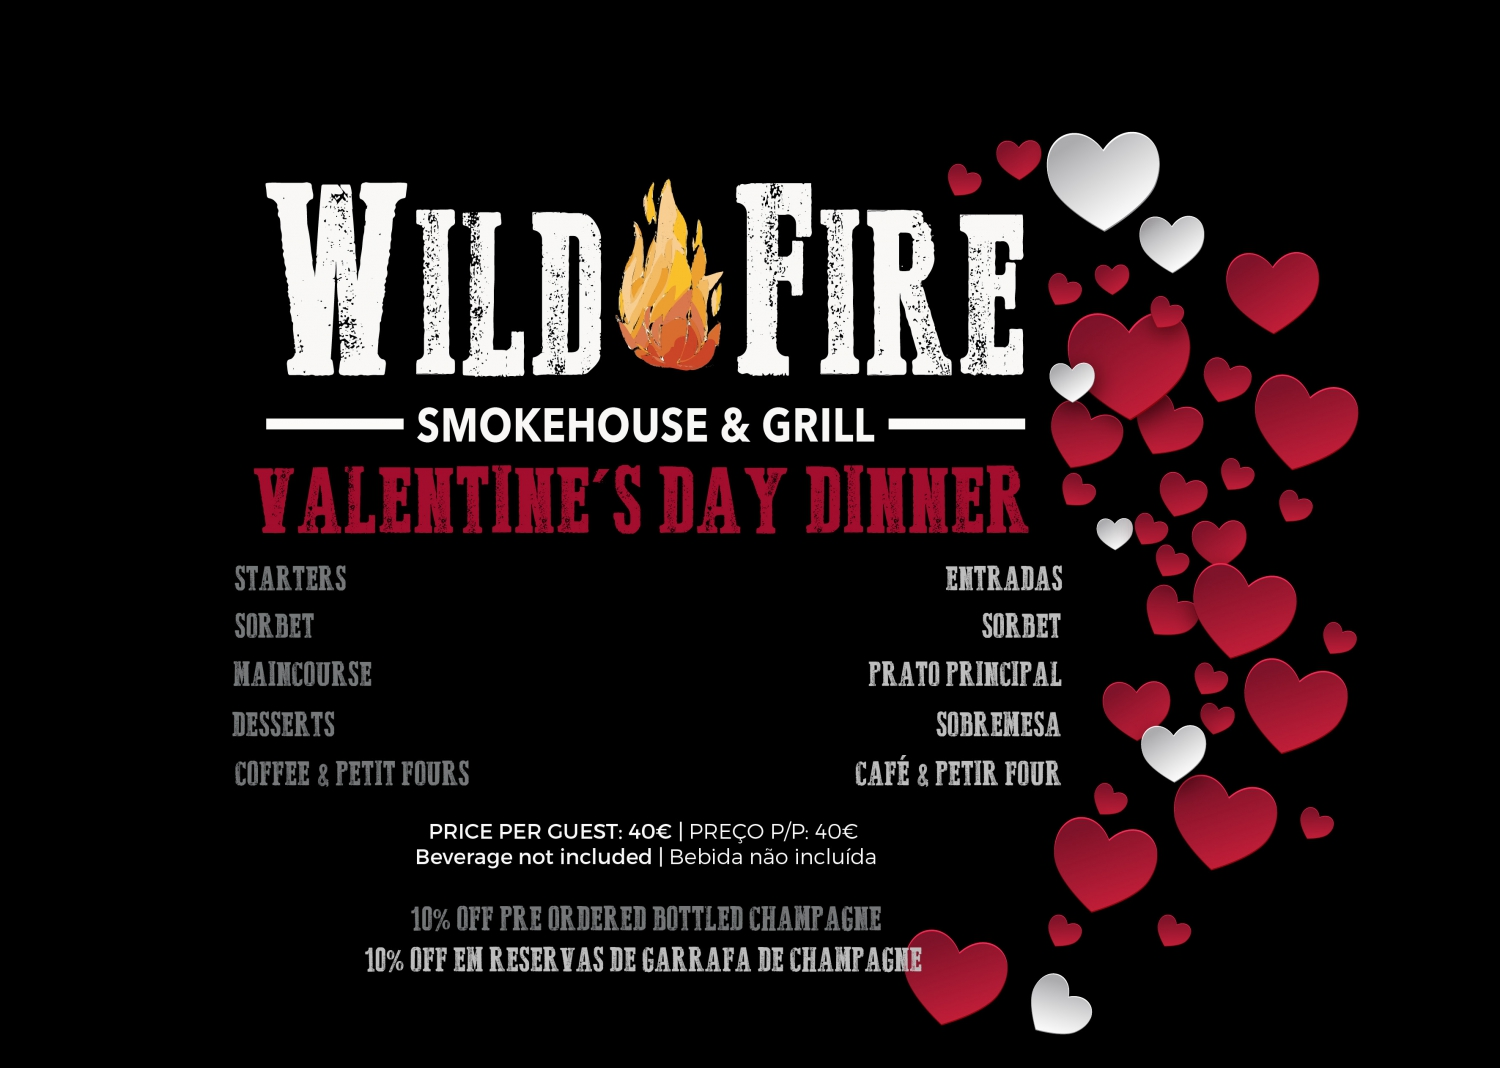 Valentine's Day Dinner at Wild Fire